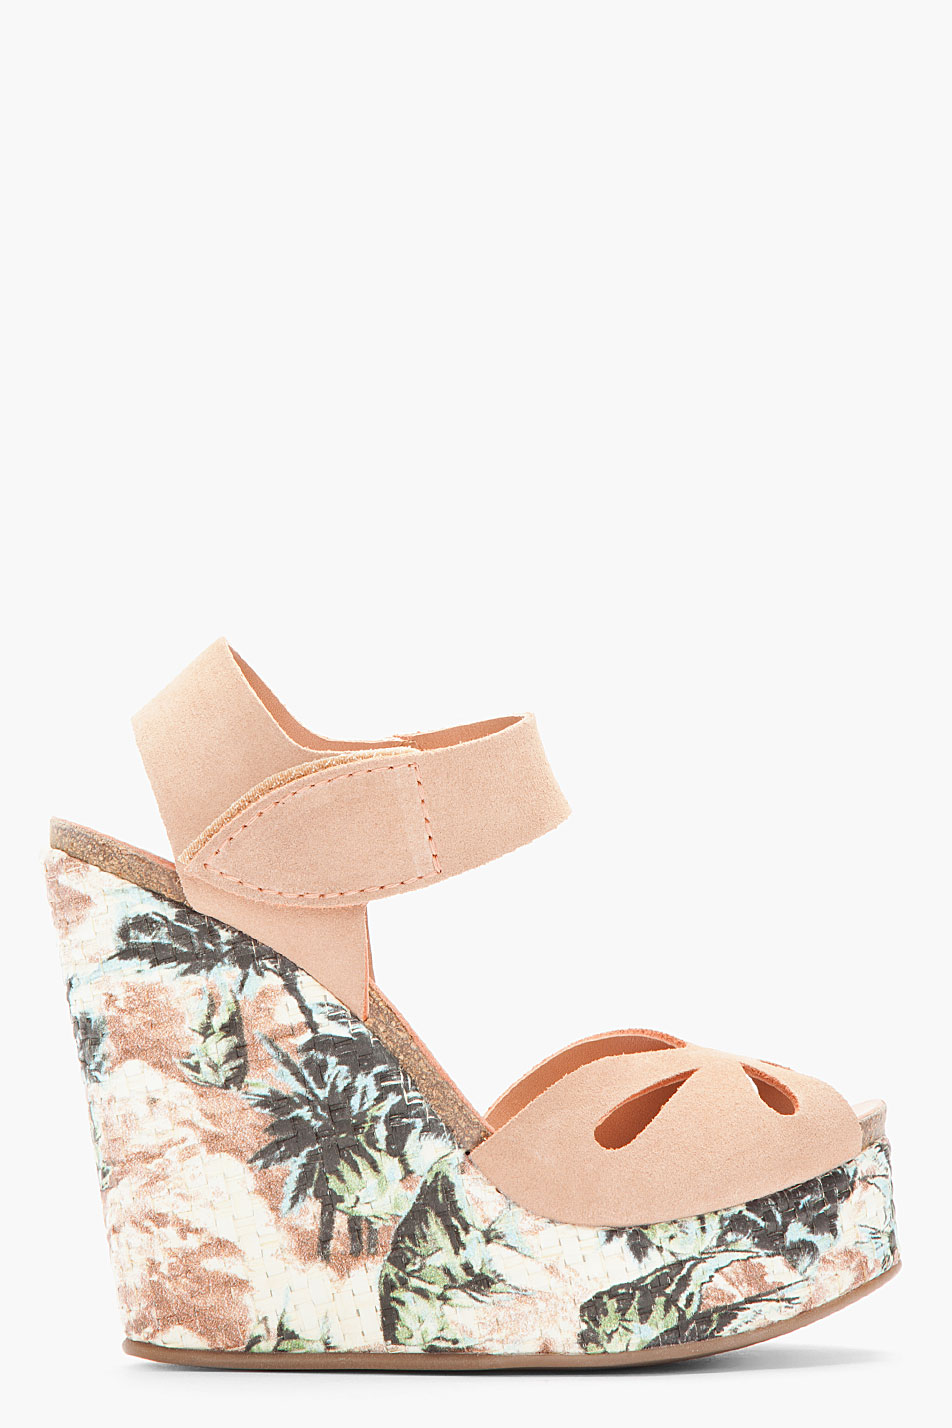 Lyst Pedro Garcia Dusty Rose Suede Floral Alice Wedge